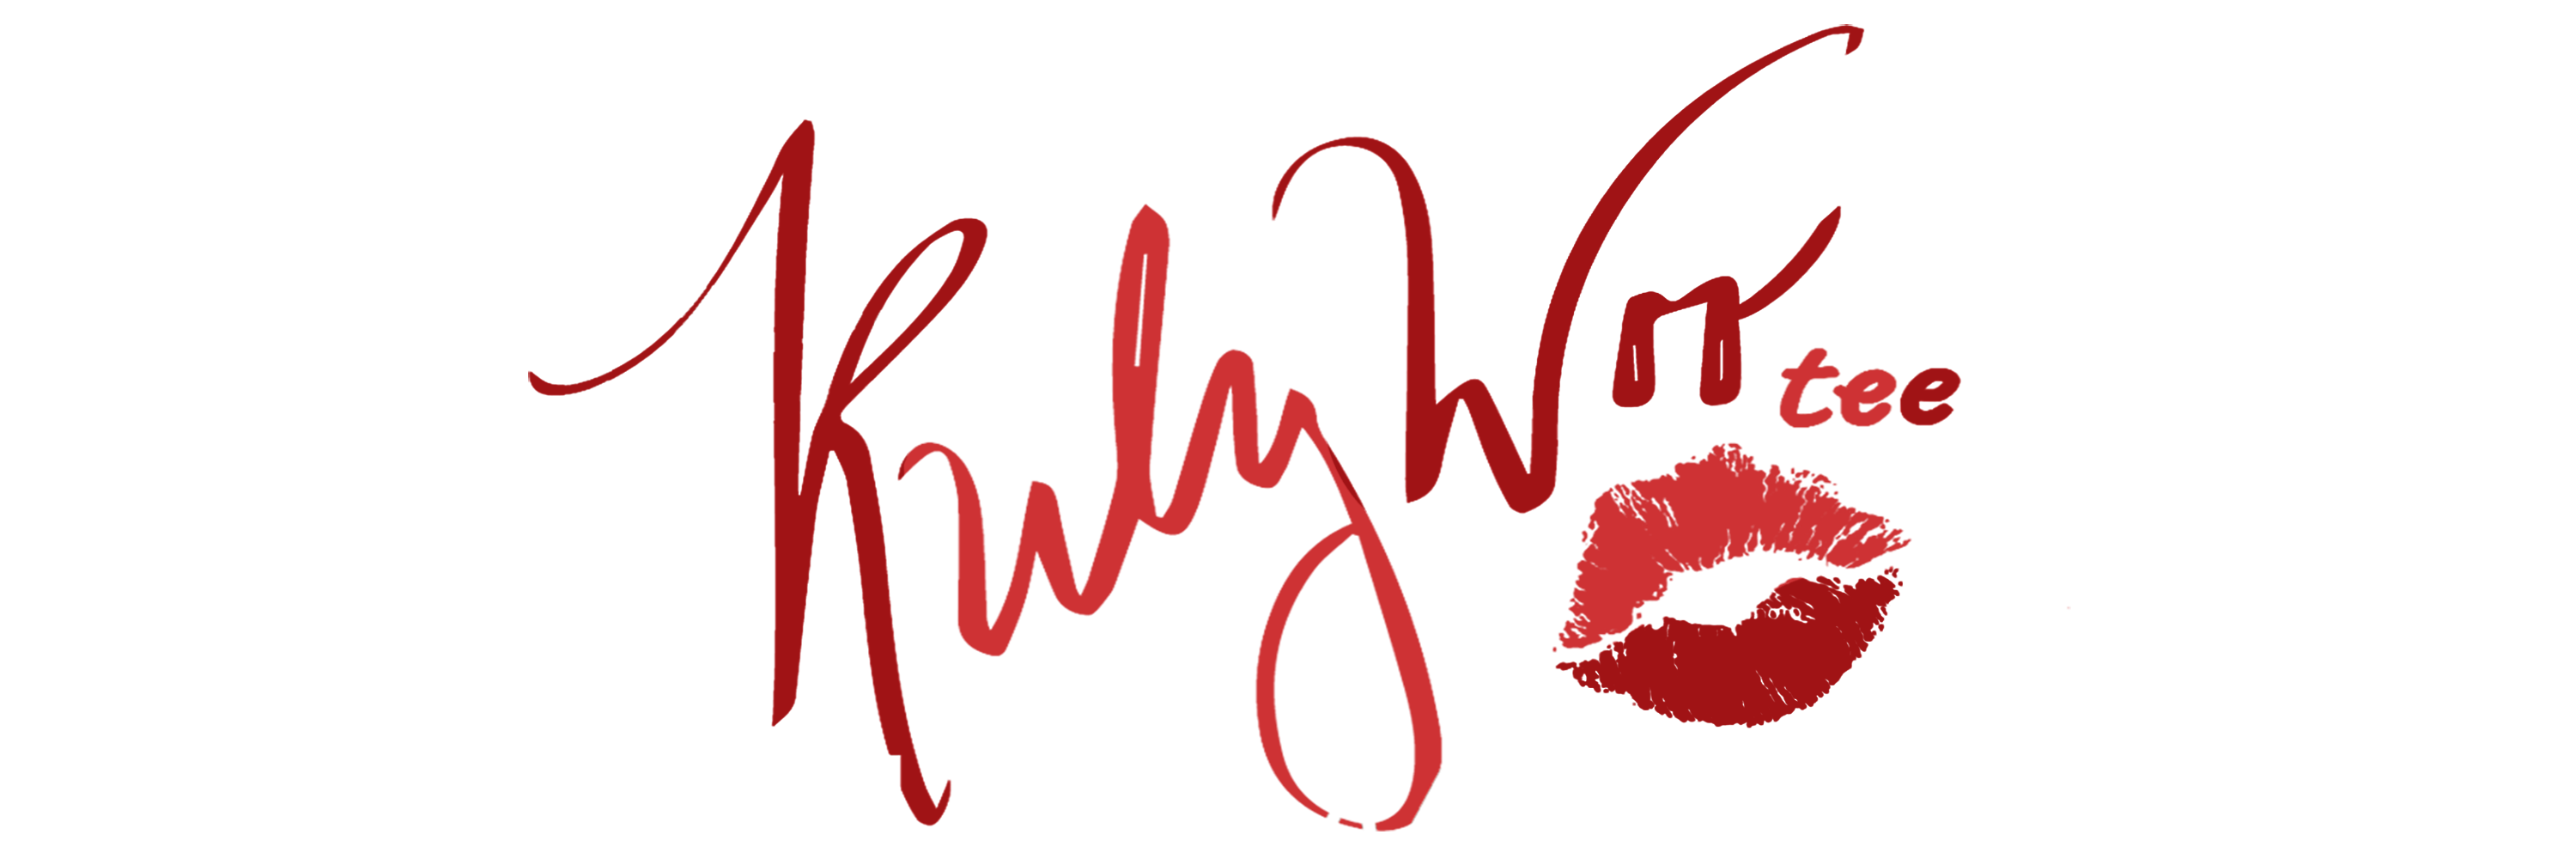 Rubywootee – The best loving fashion – Loving t-shirt, hoodie, tank update for man and woman.